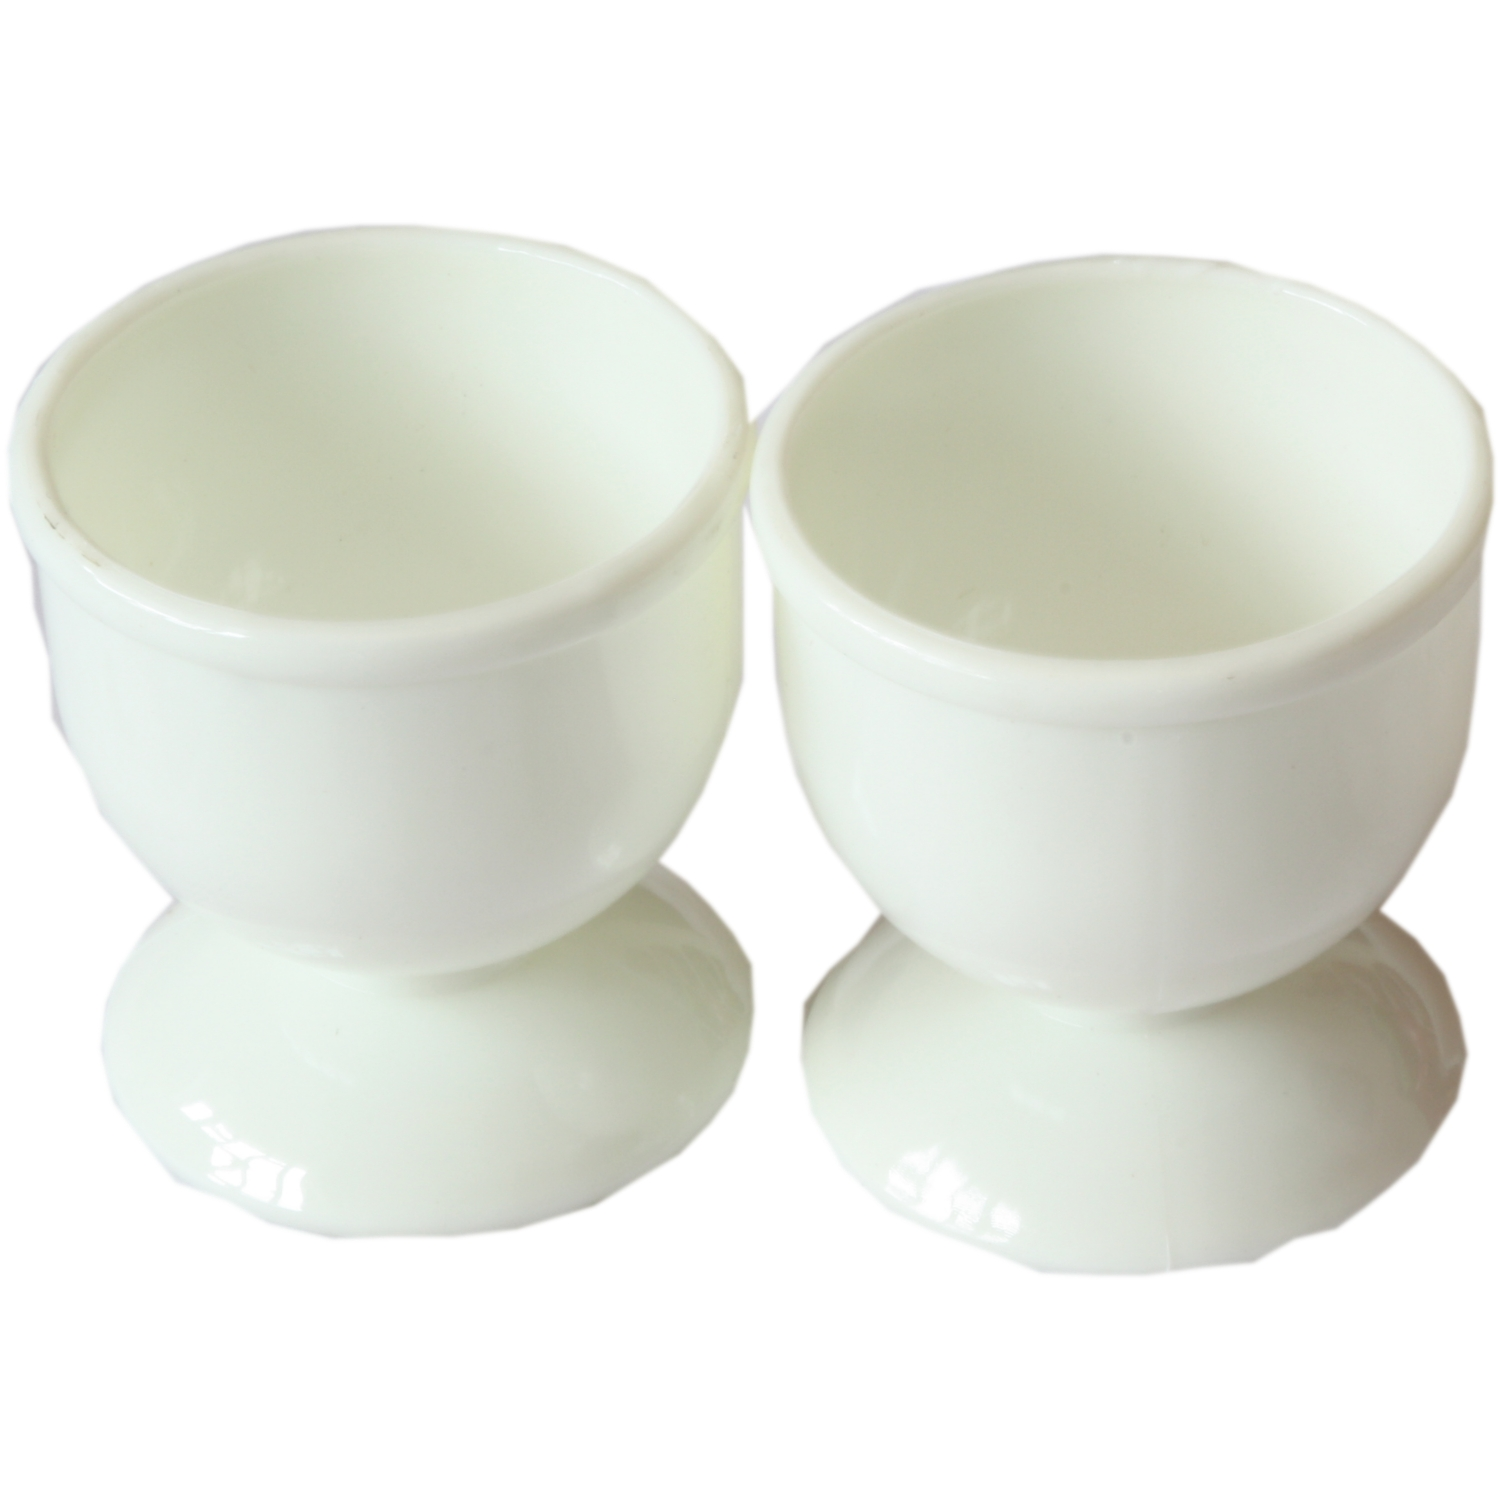 2x Camping Children Kids Plastic Boiled Egg Cups Ebay